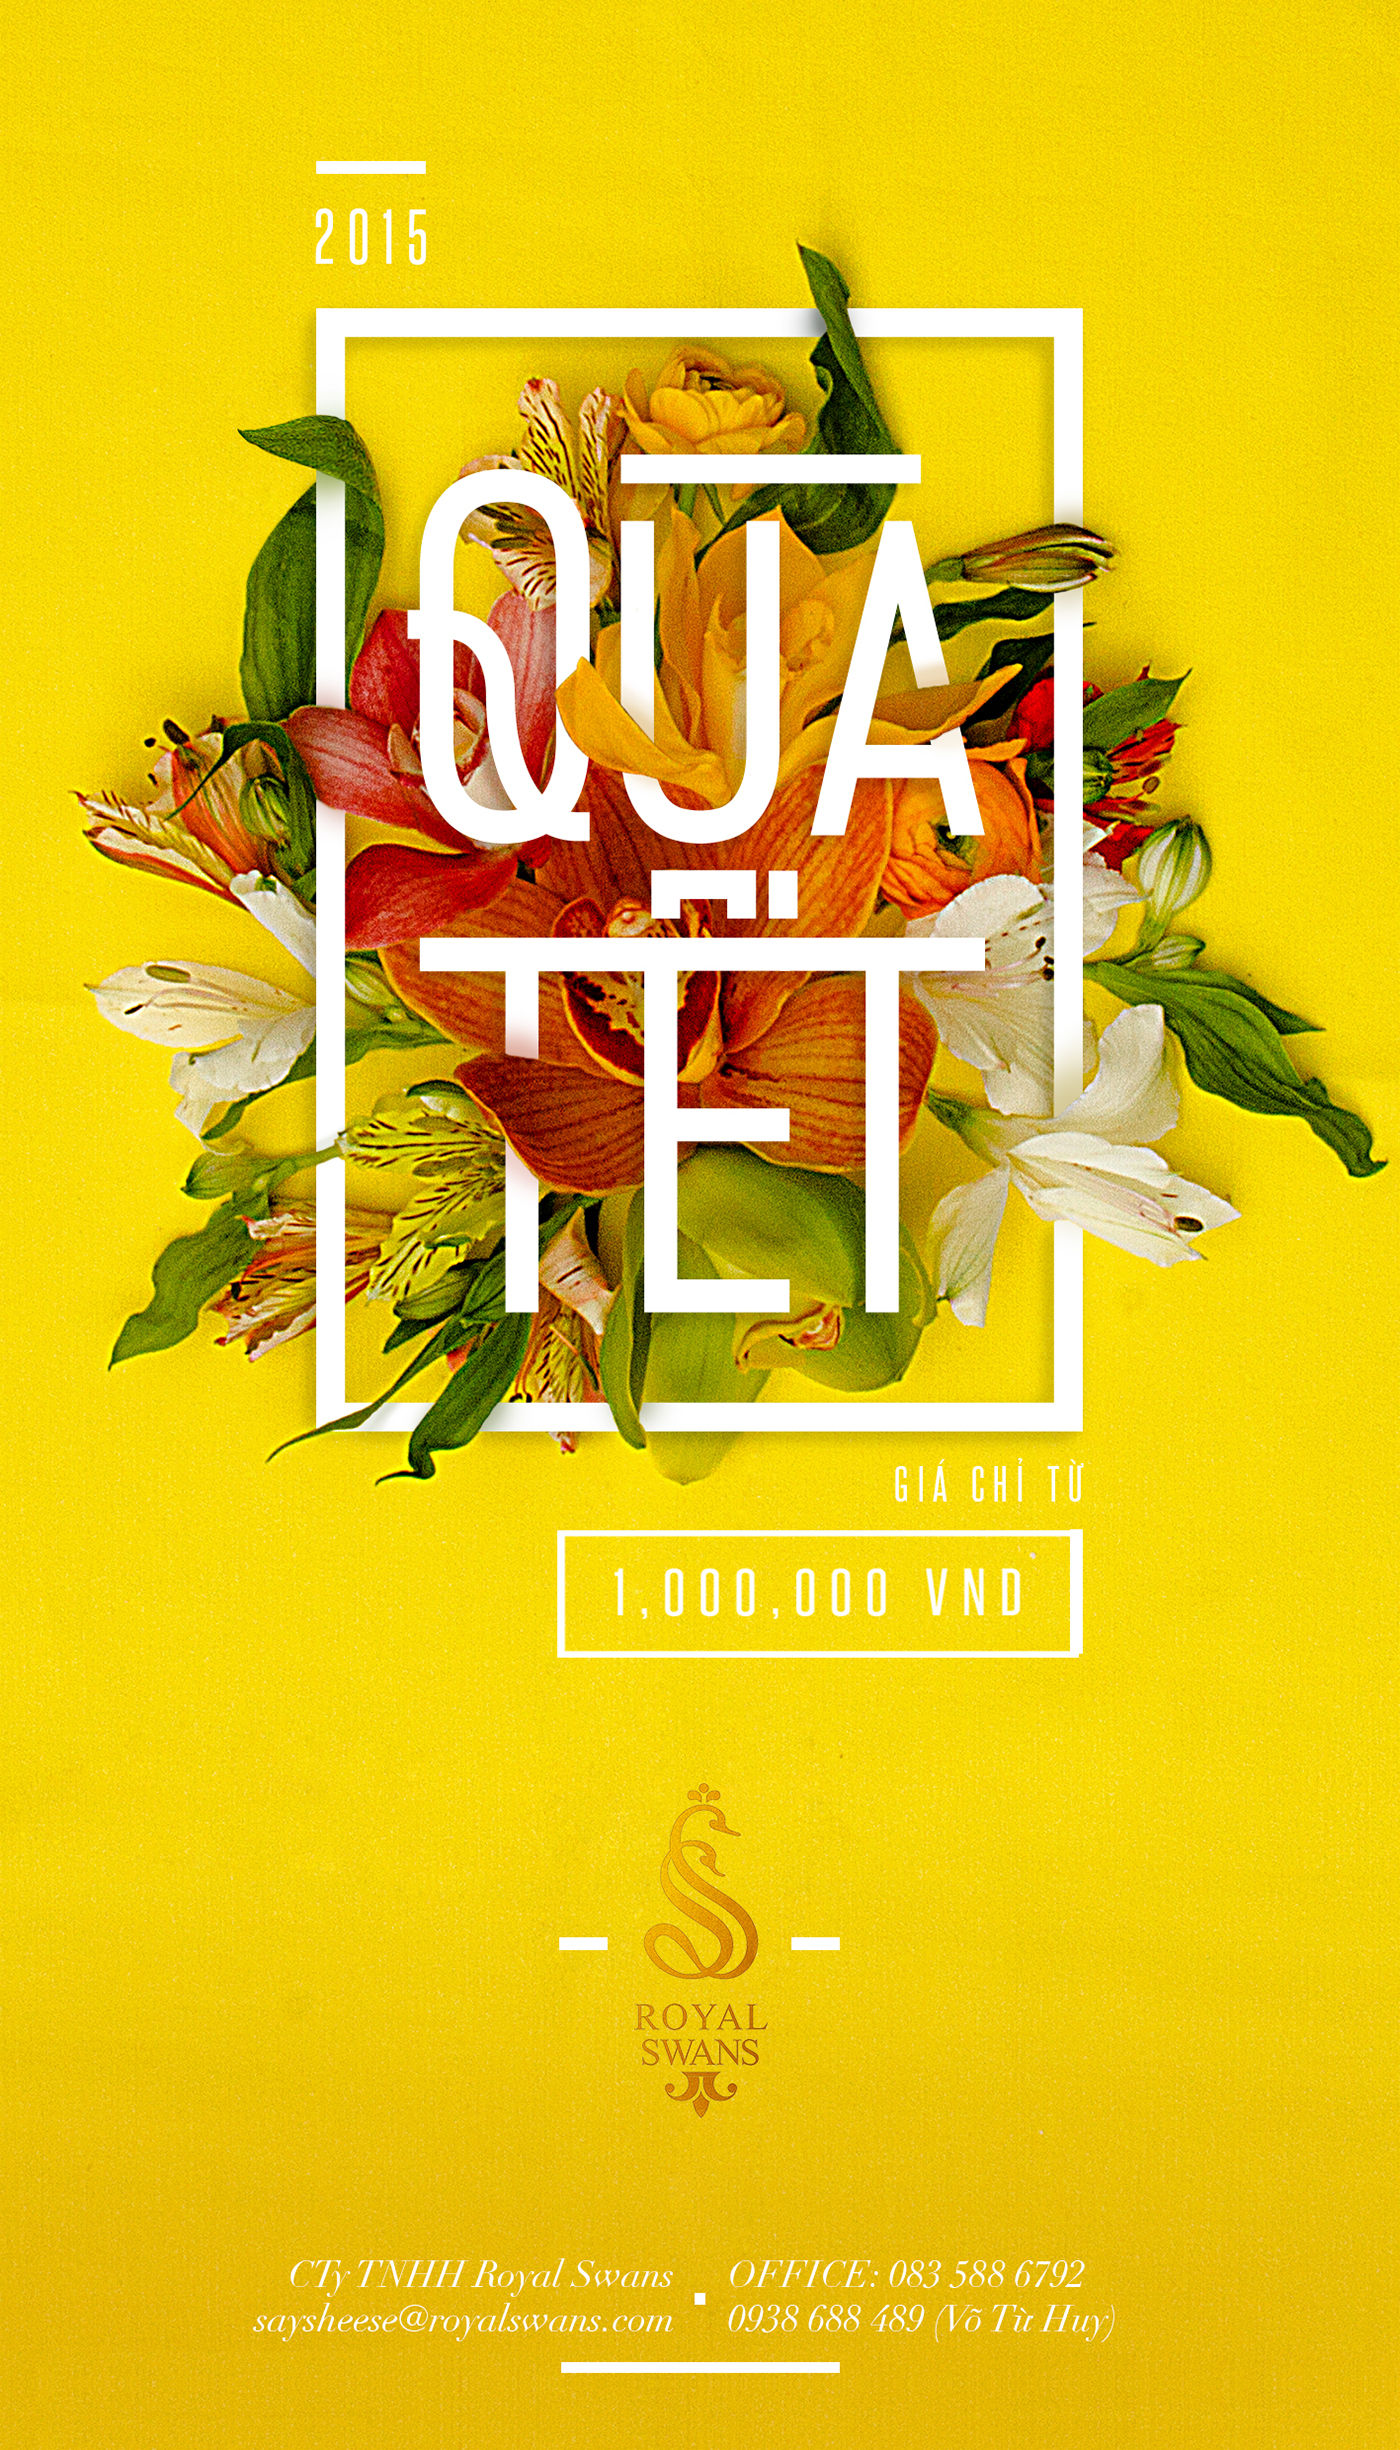 poster holiday tet gift posters behance designs layout christmas gifts vietnamese designed dung